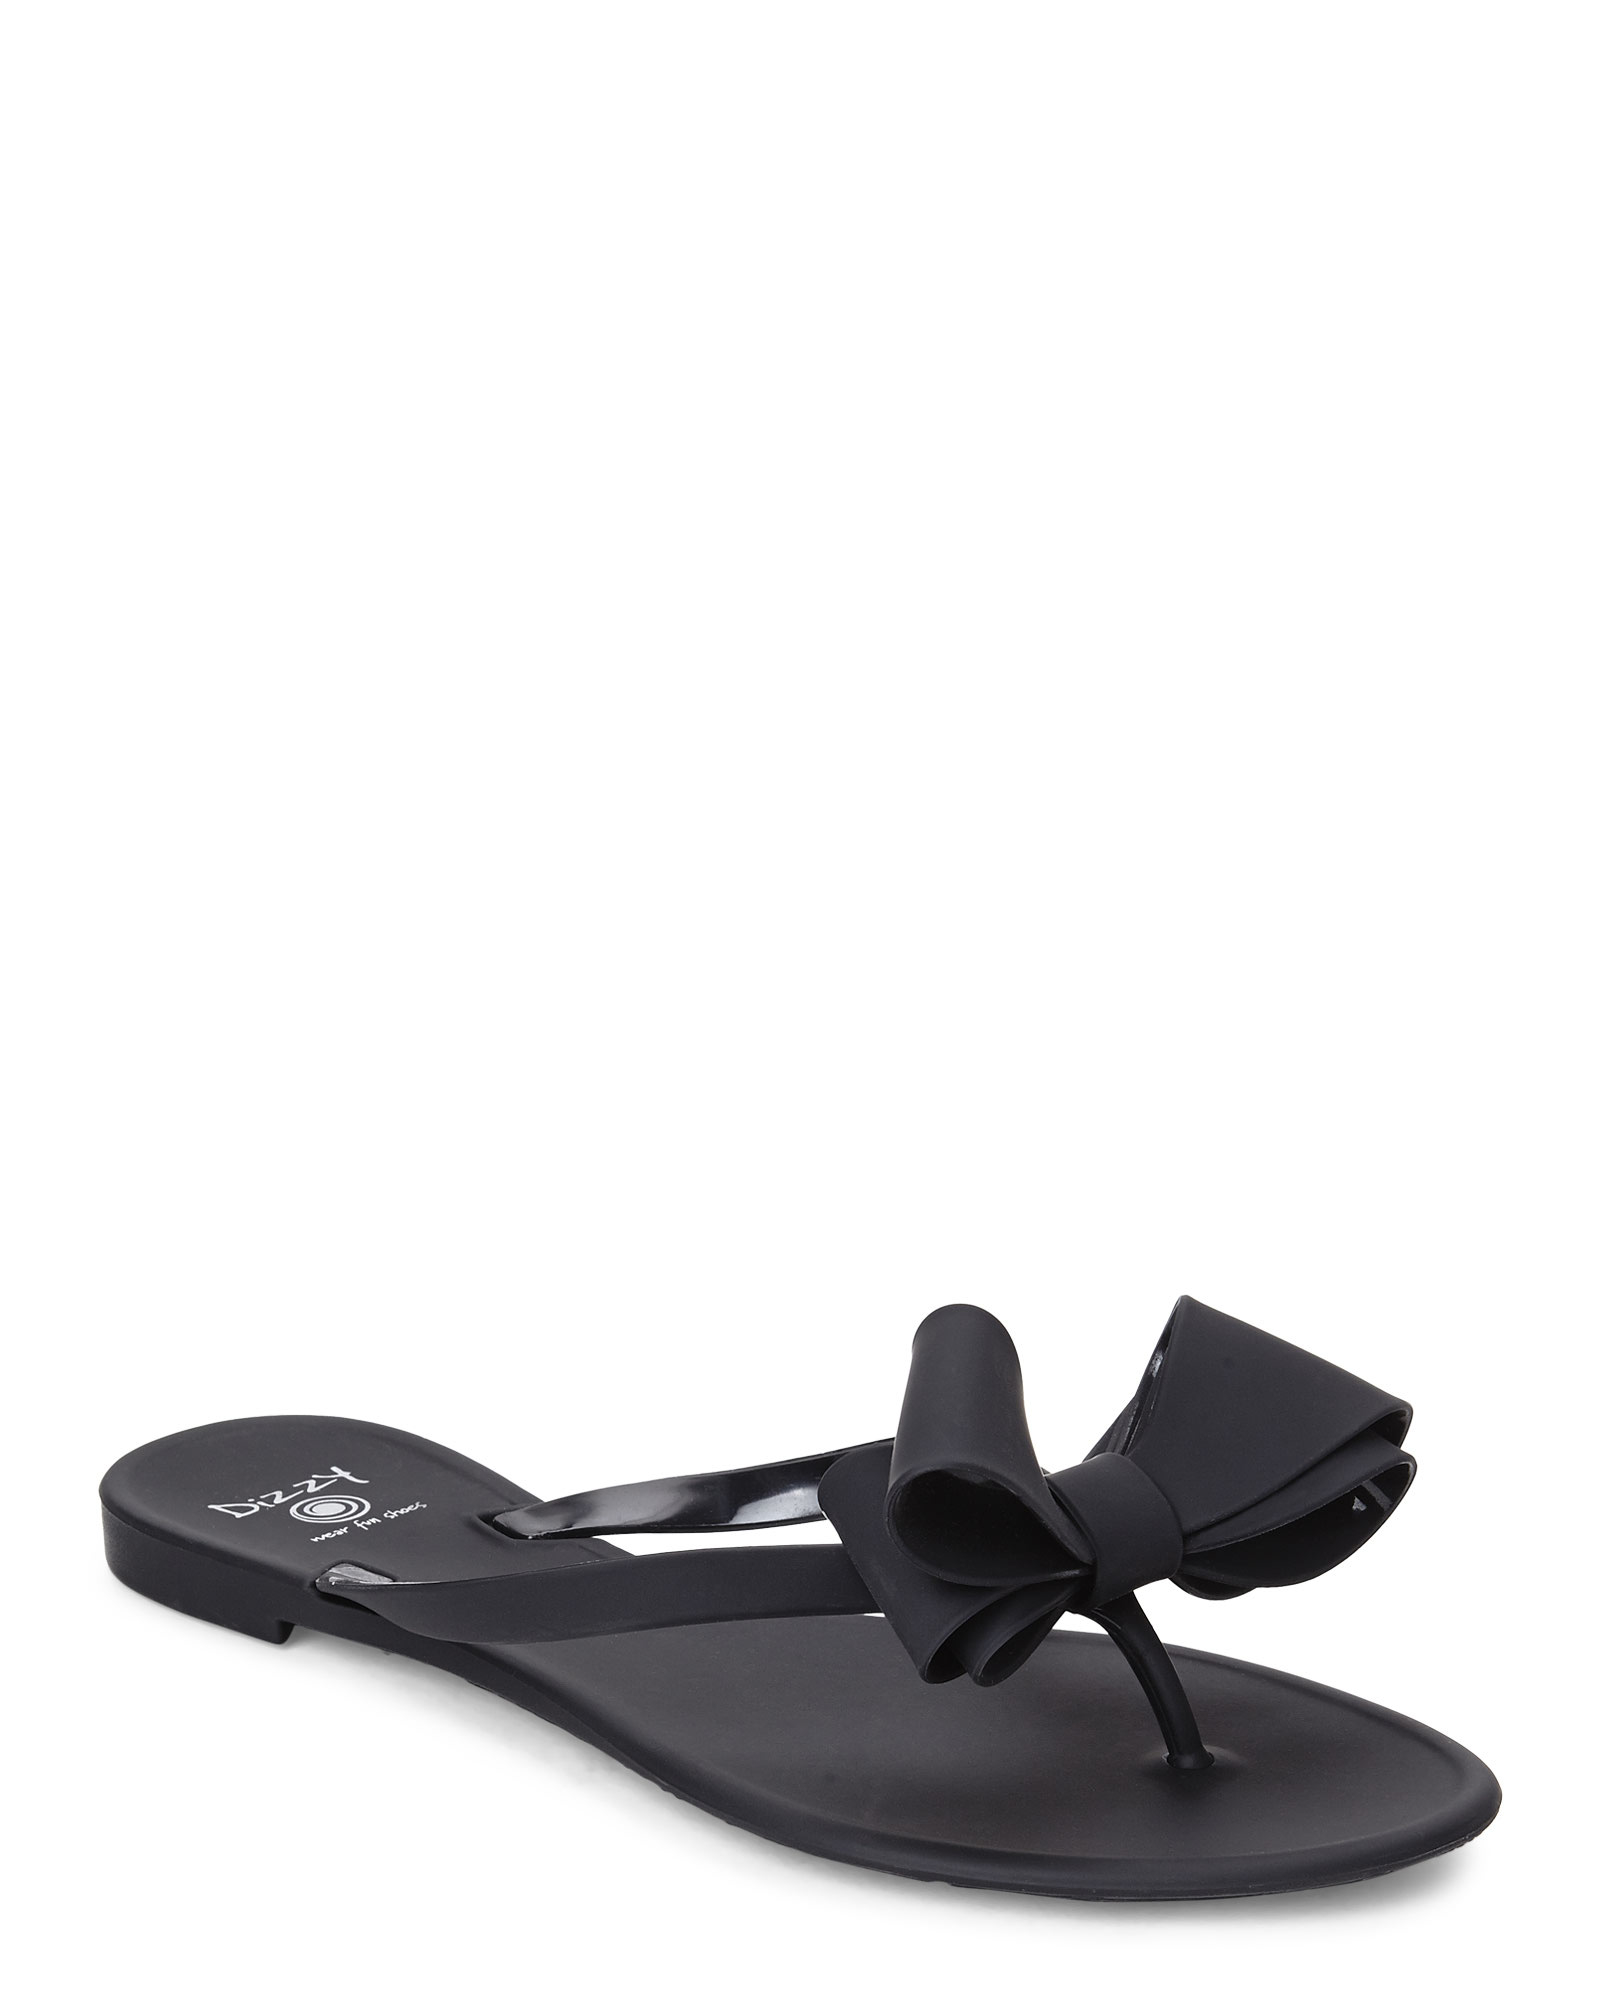 9ba8d54a574c12 Lyst - Dizzy Matte Bow Thong Sandals in Black